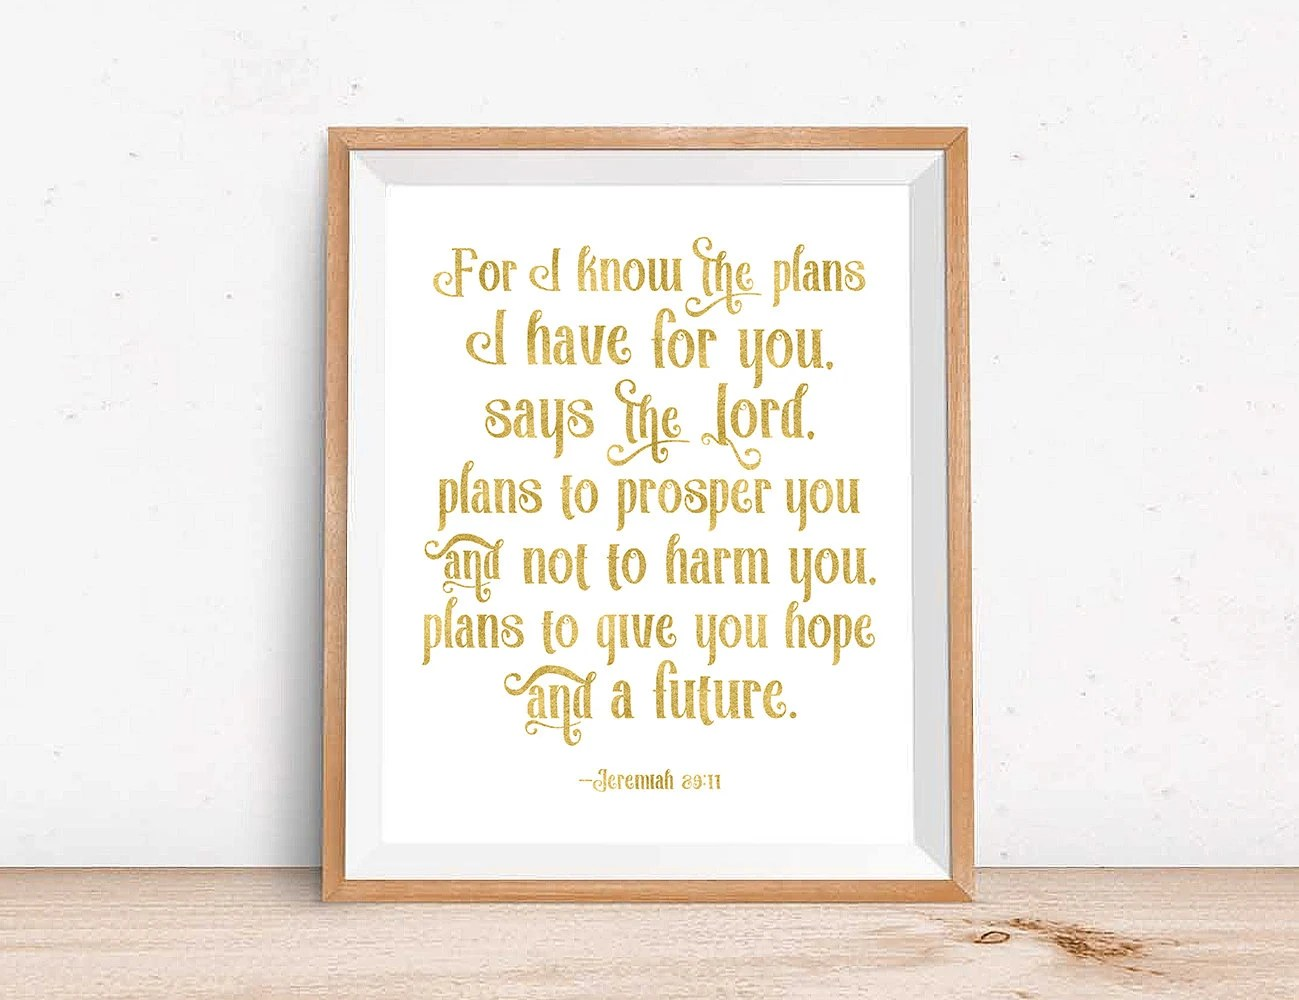 I Not I Have Plans Harm Says You And Know Plans You Lord Y Prosper